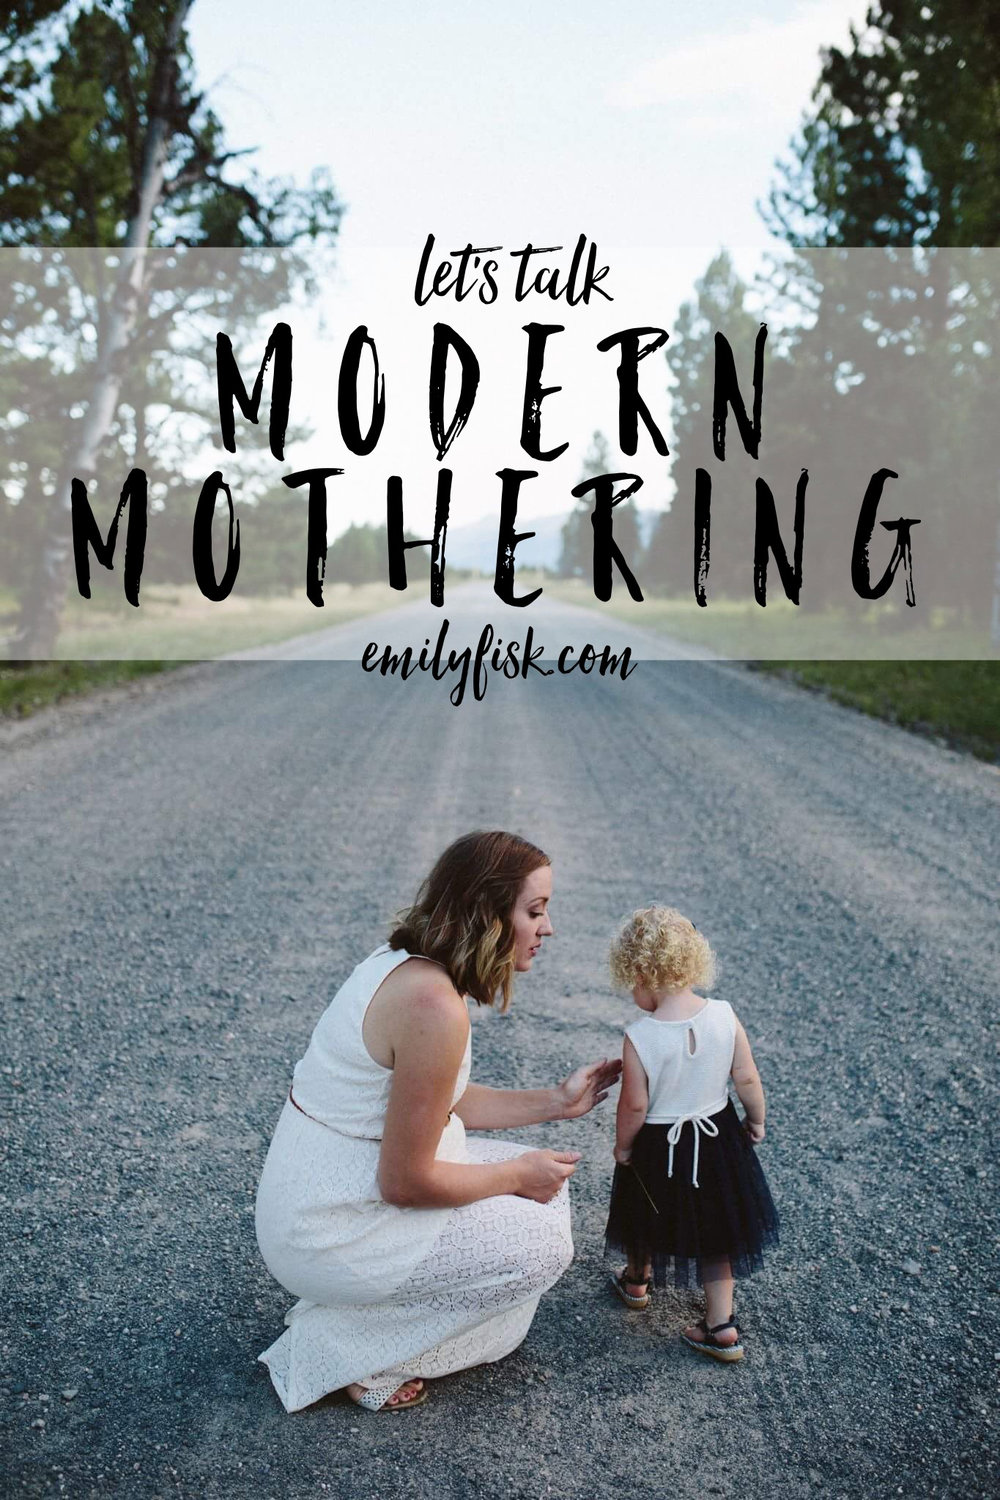 Modern Mothering series on emilyfisk.com